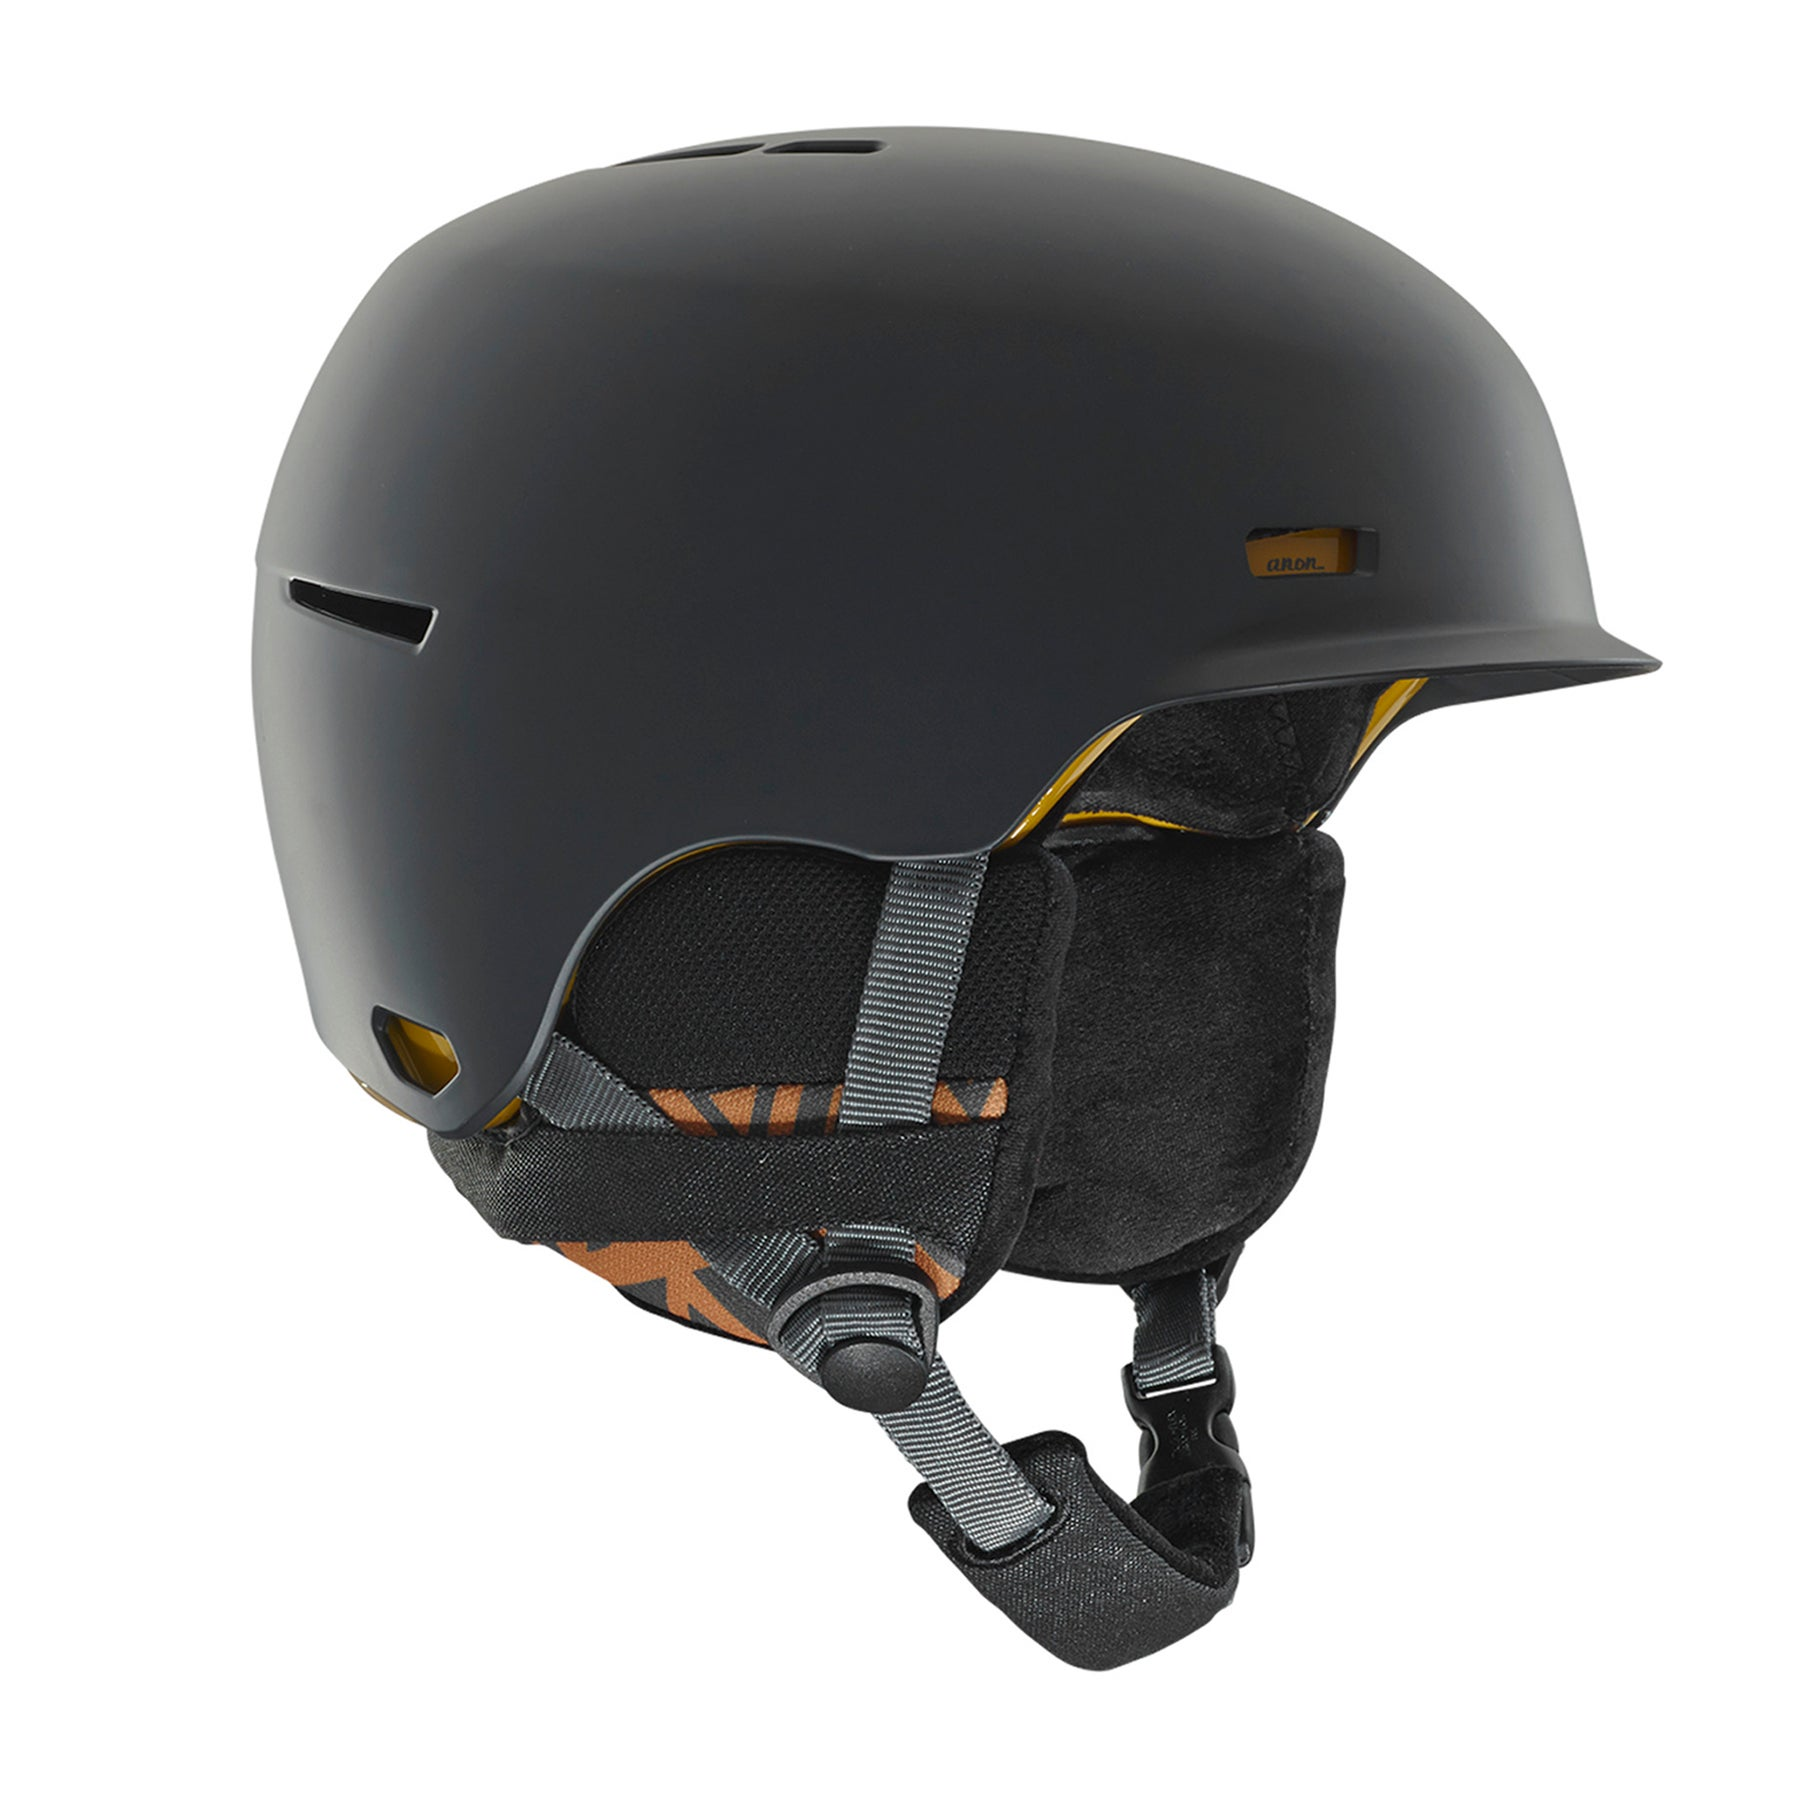 Anon Highwire Ski Helmet - Dark Gray Eu